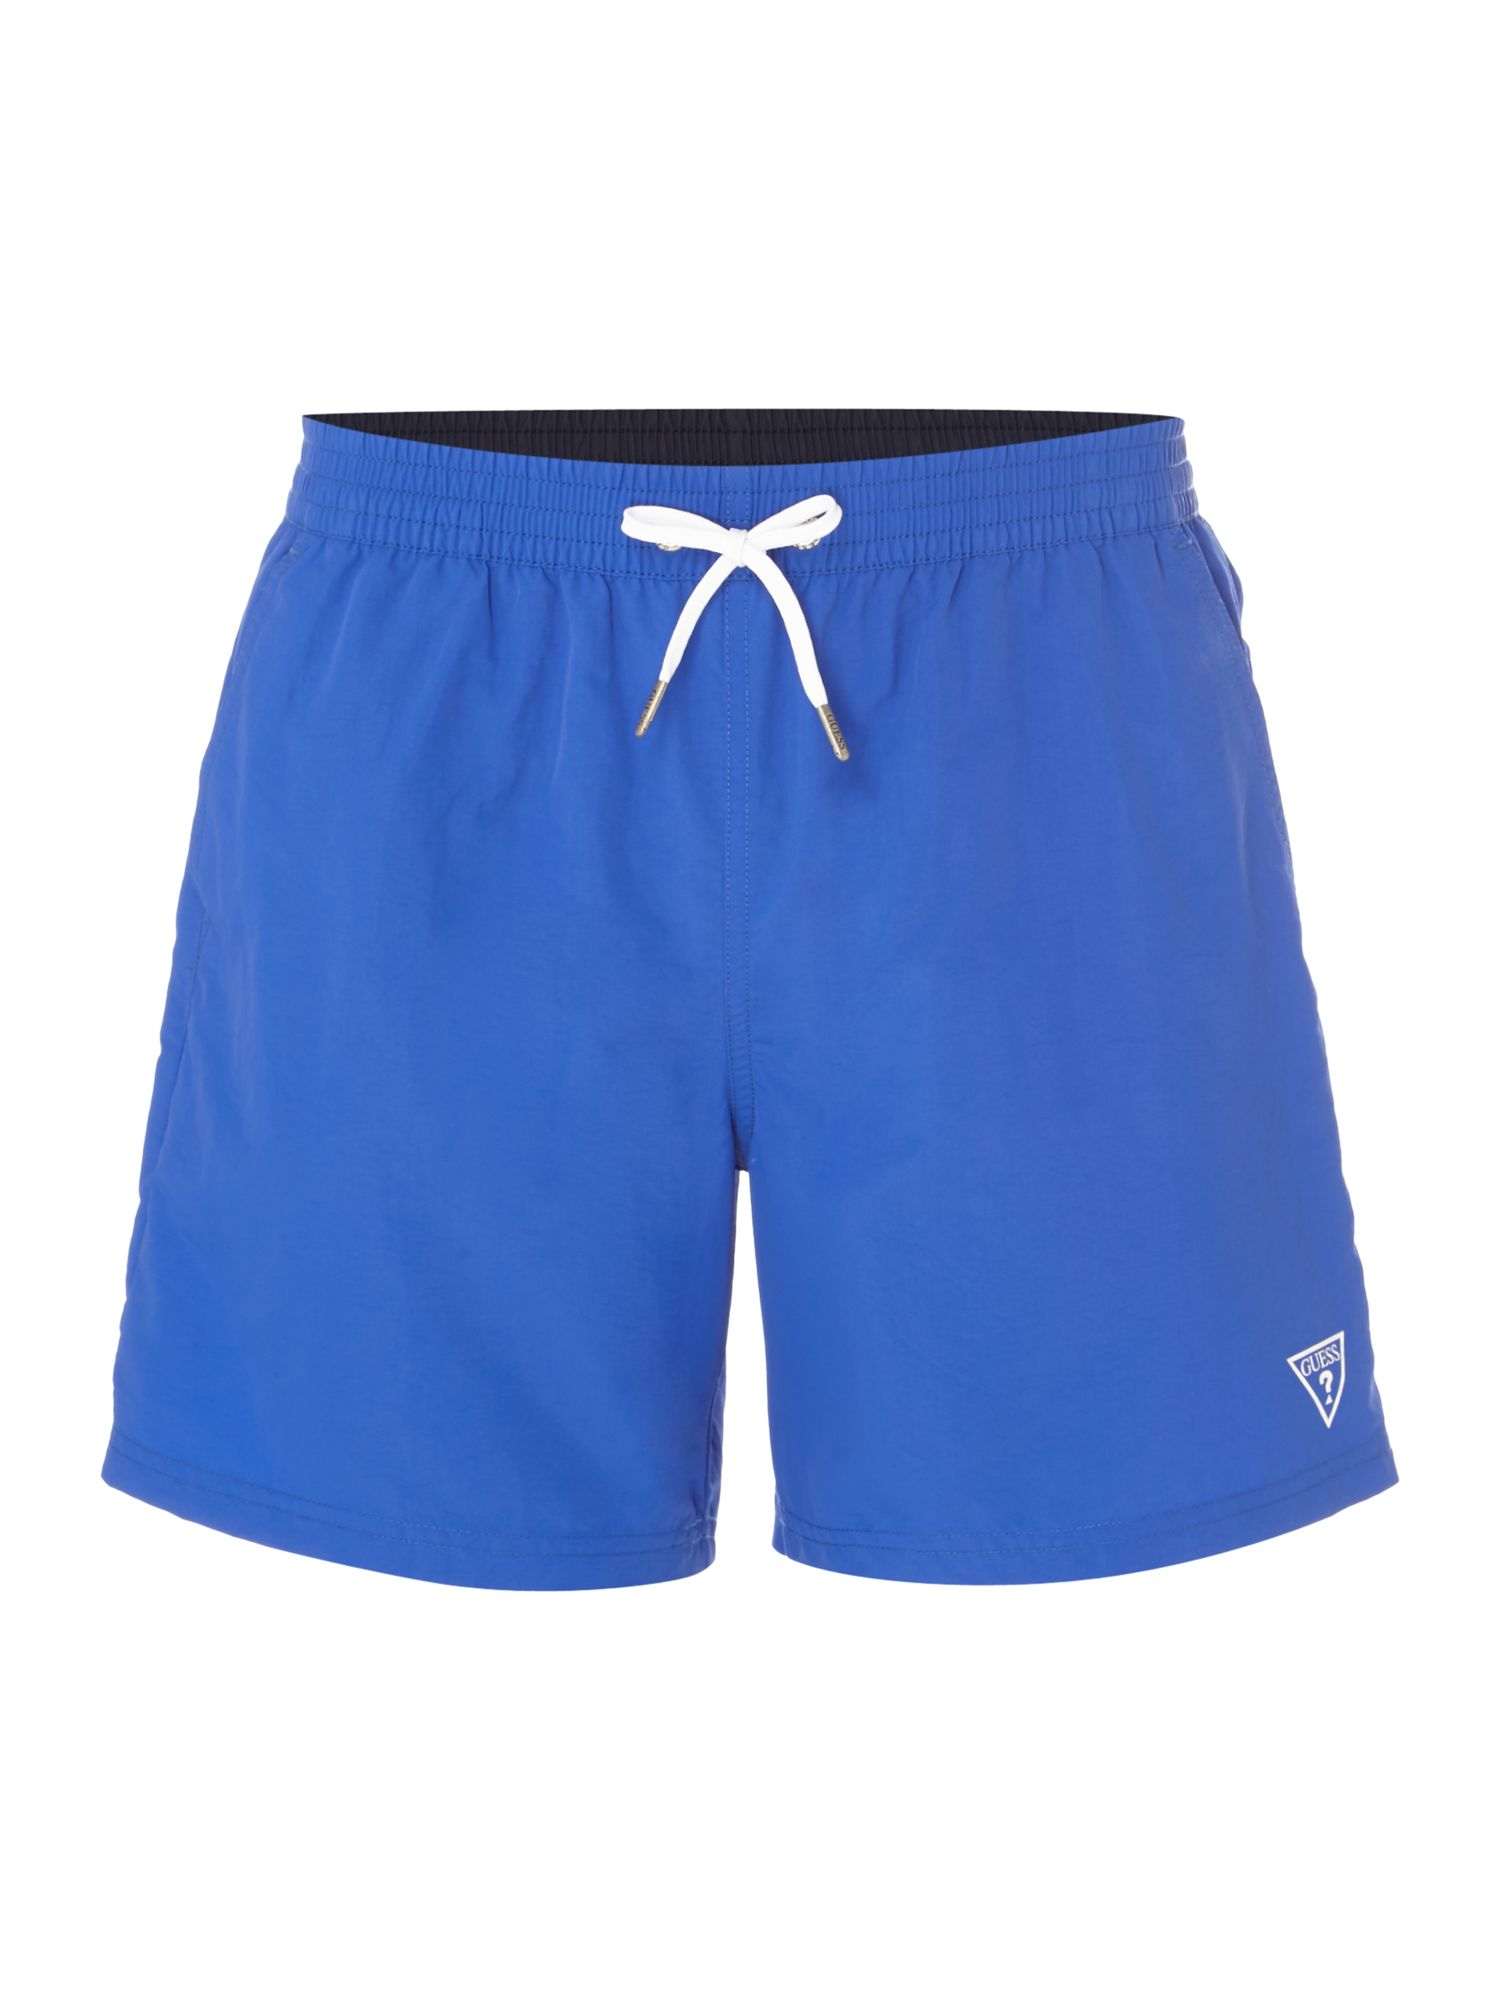 Men's Guess Mid Length Logo Swim Shorts, Blue